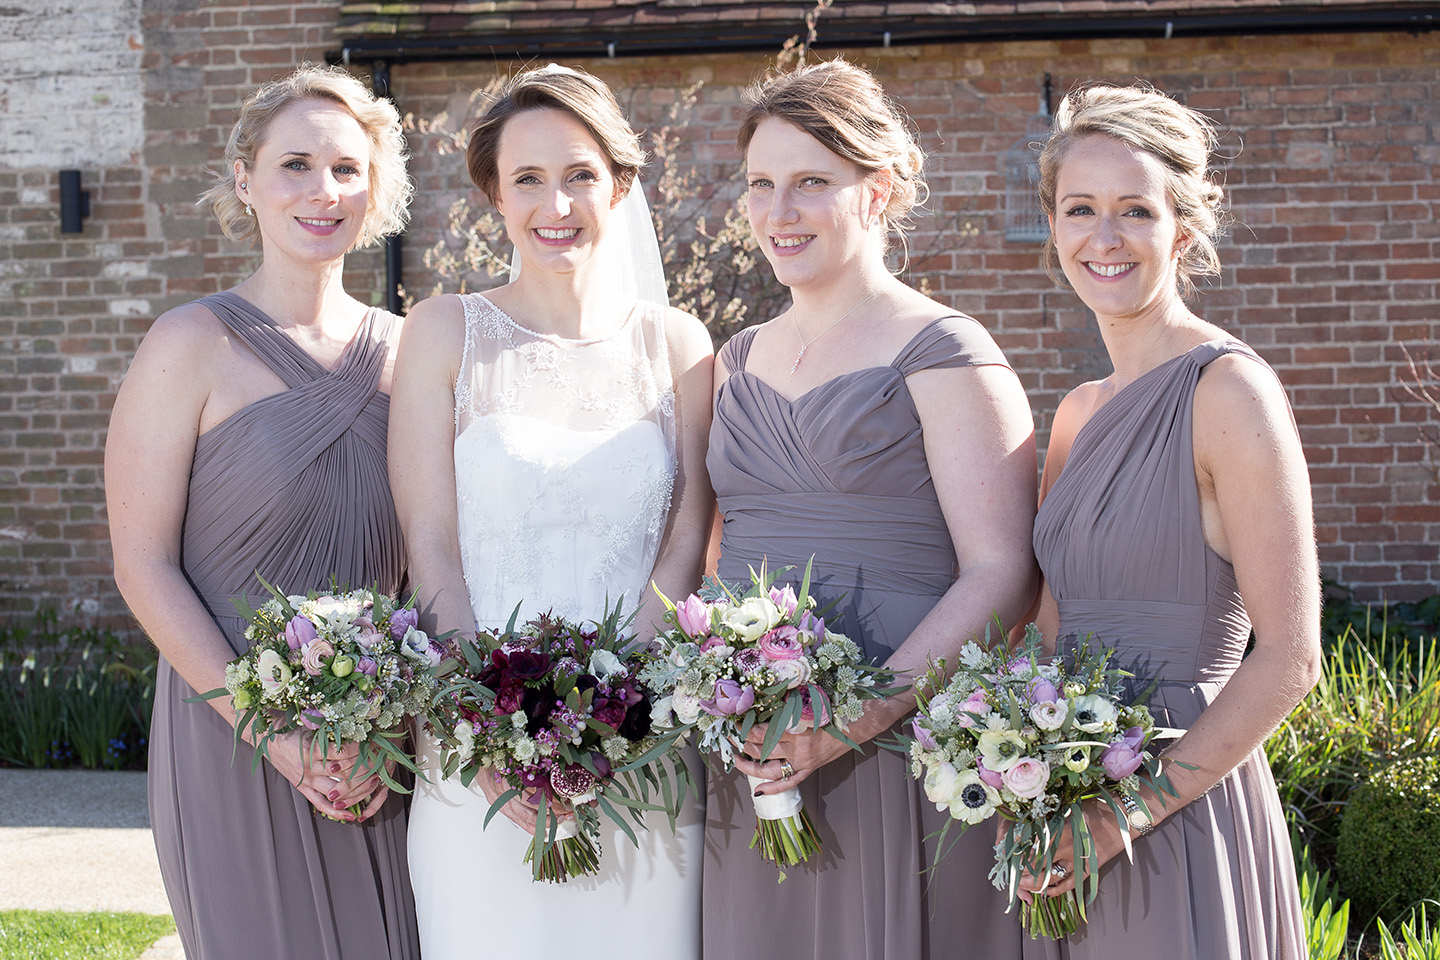 The bride stands with her bridesmaids who wear lilac dresses for this spring wedding at Bassmead Manor Barns